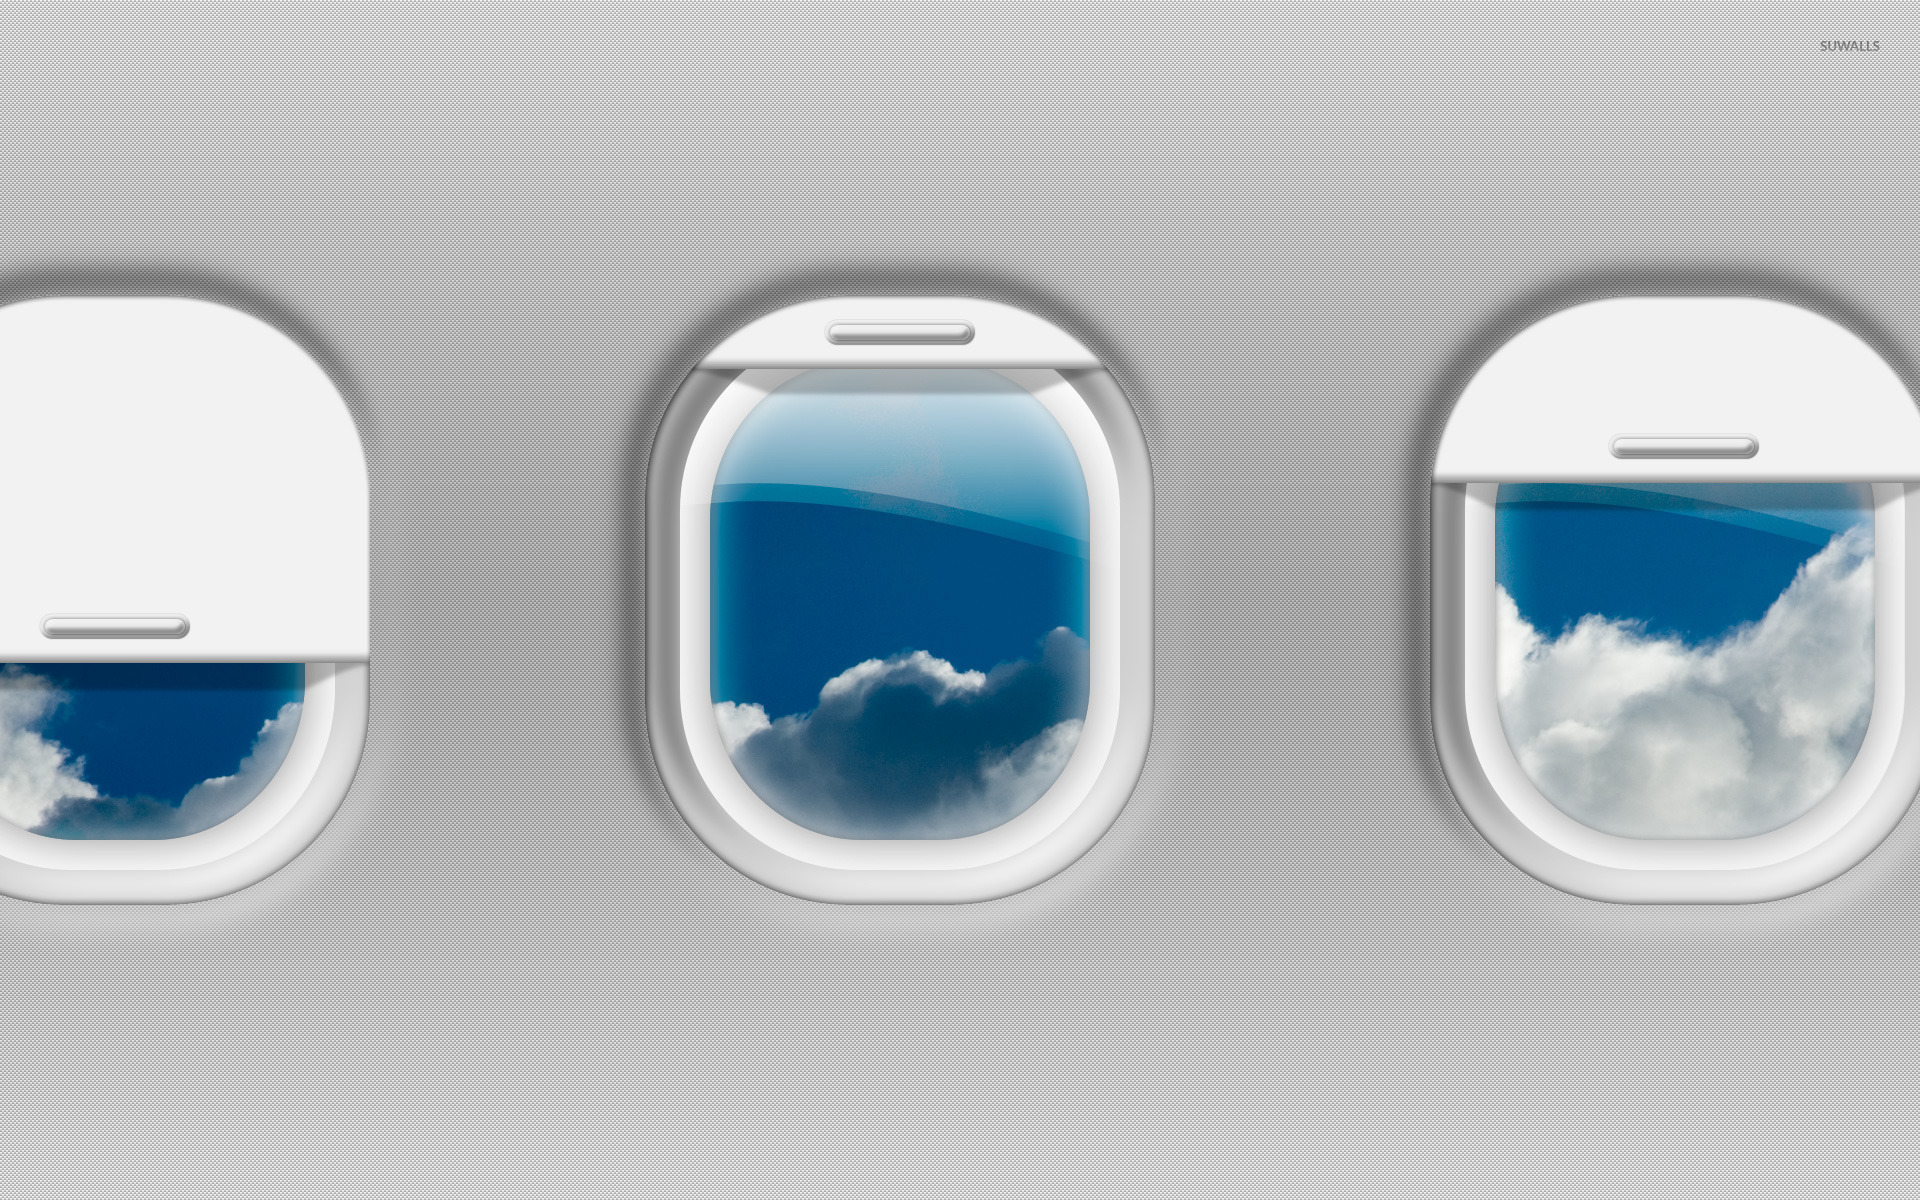 Airplane Windows Wallpaper Digital Art Wallpapers 24679